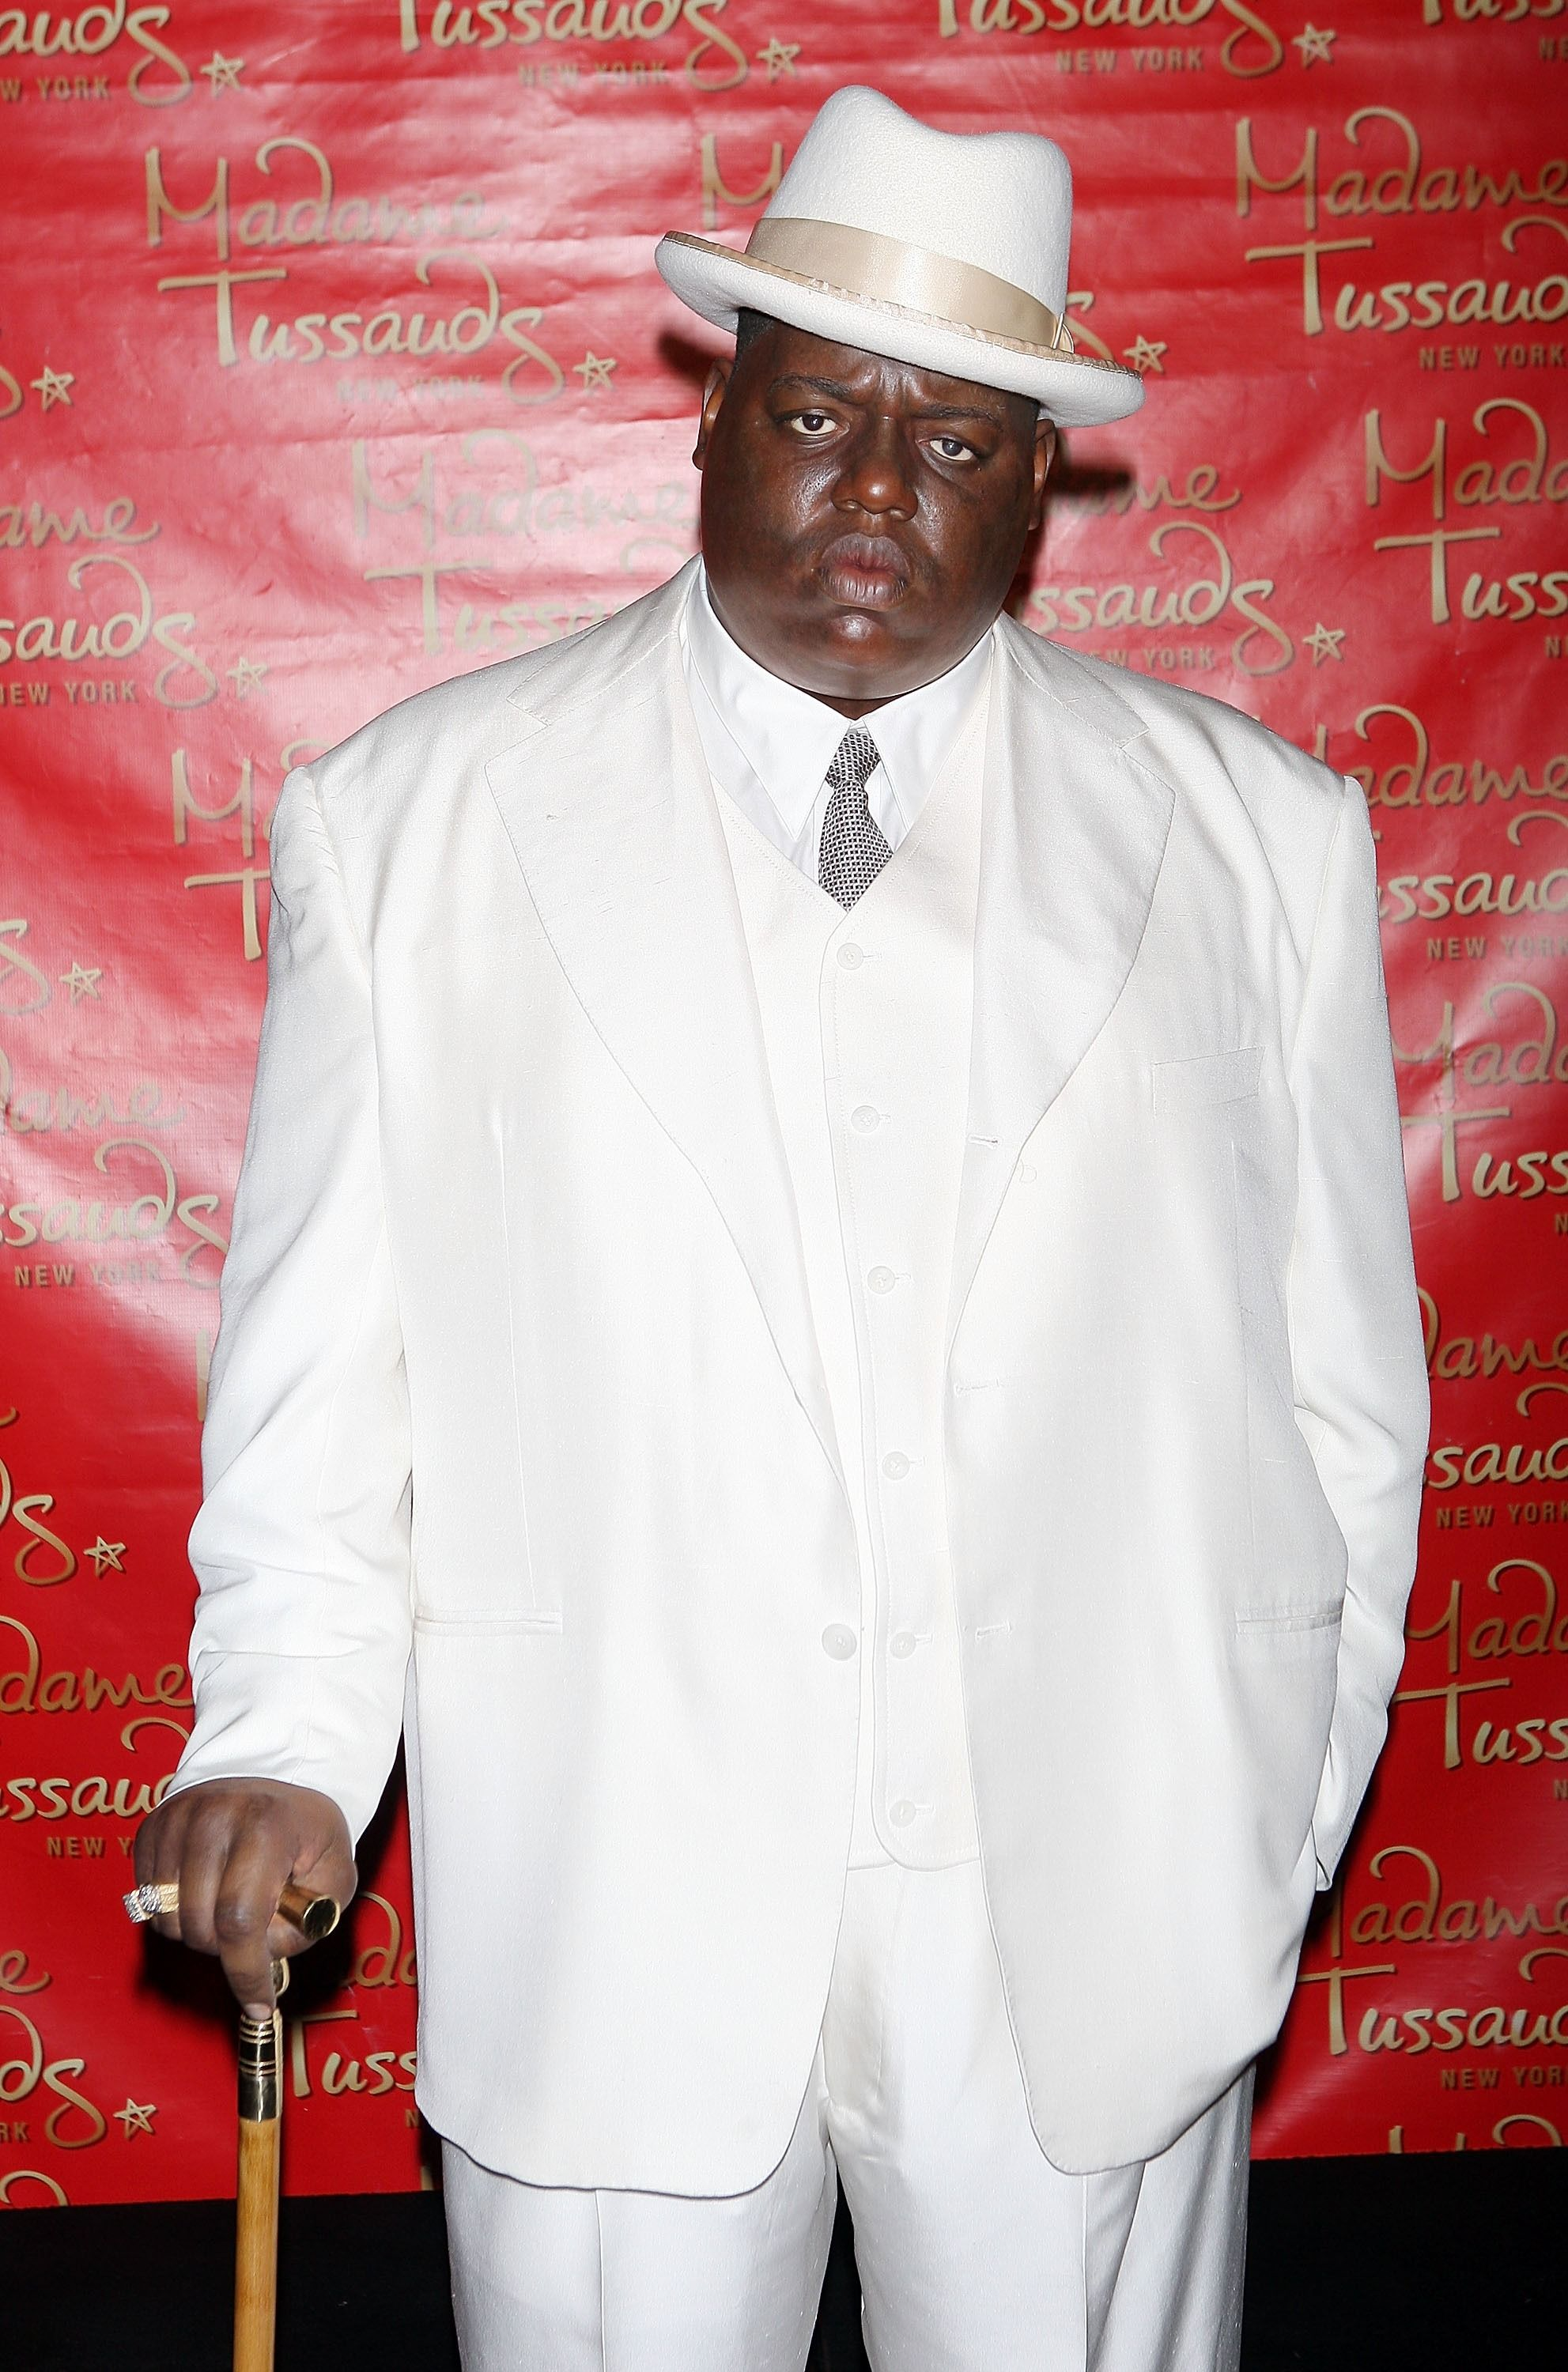 A wax figure of Christopher 'Biggie Smalls' Wallace on display in Times Square on October 25, 2007. |